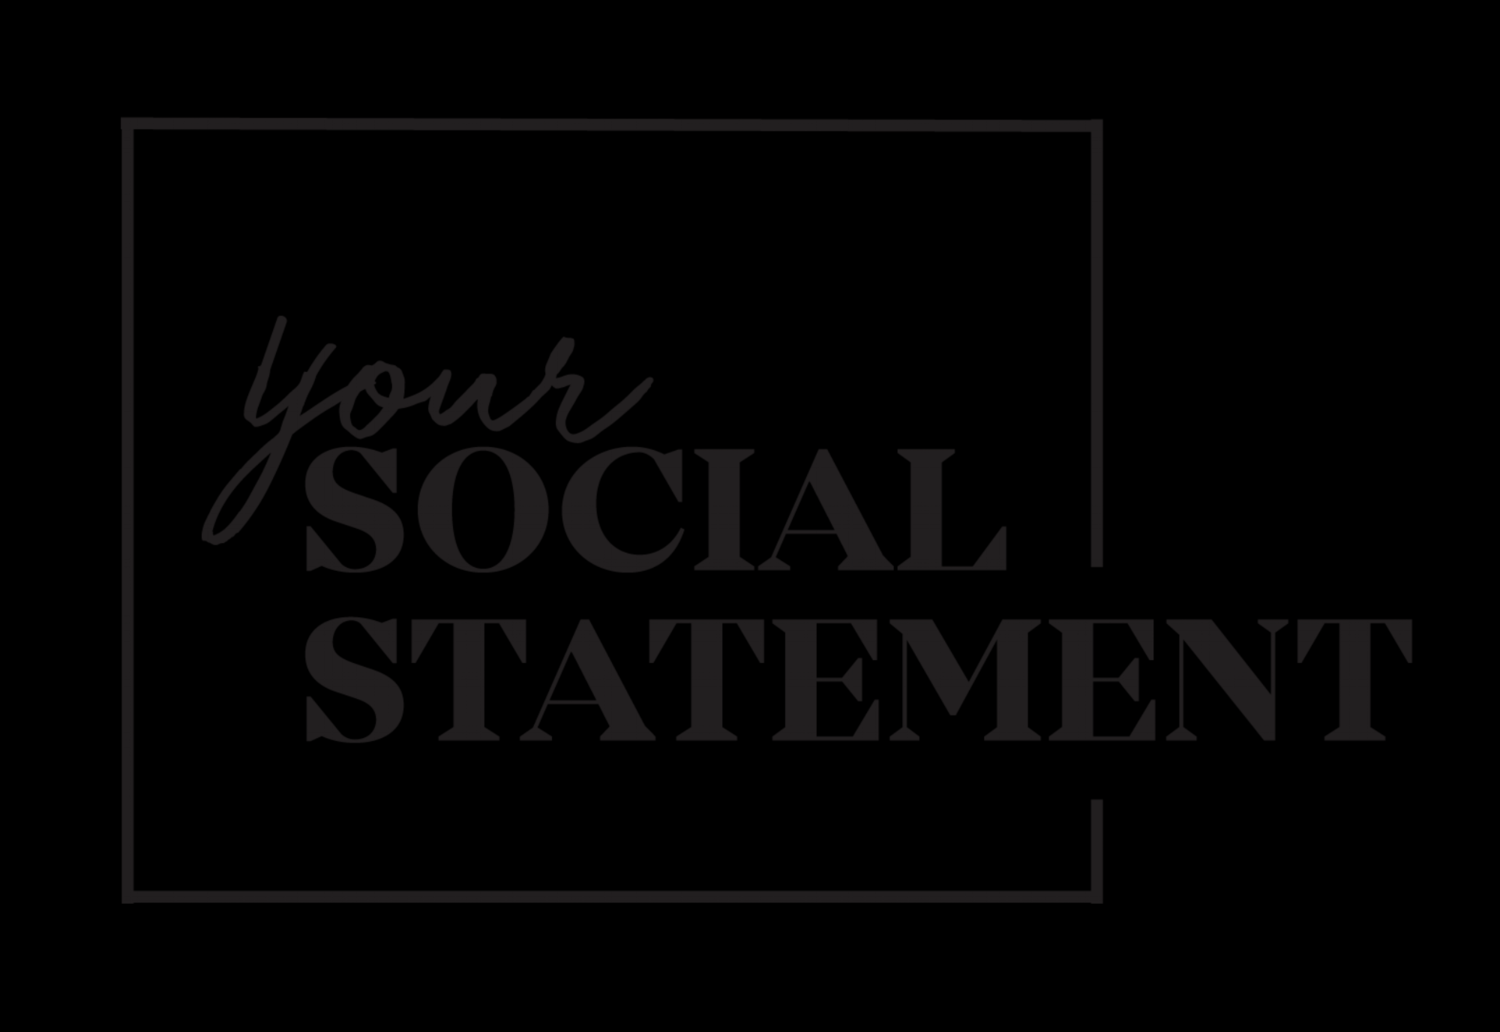 Your Social Statement